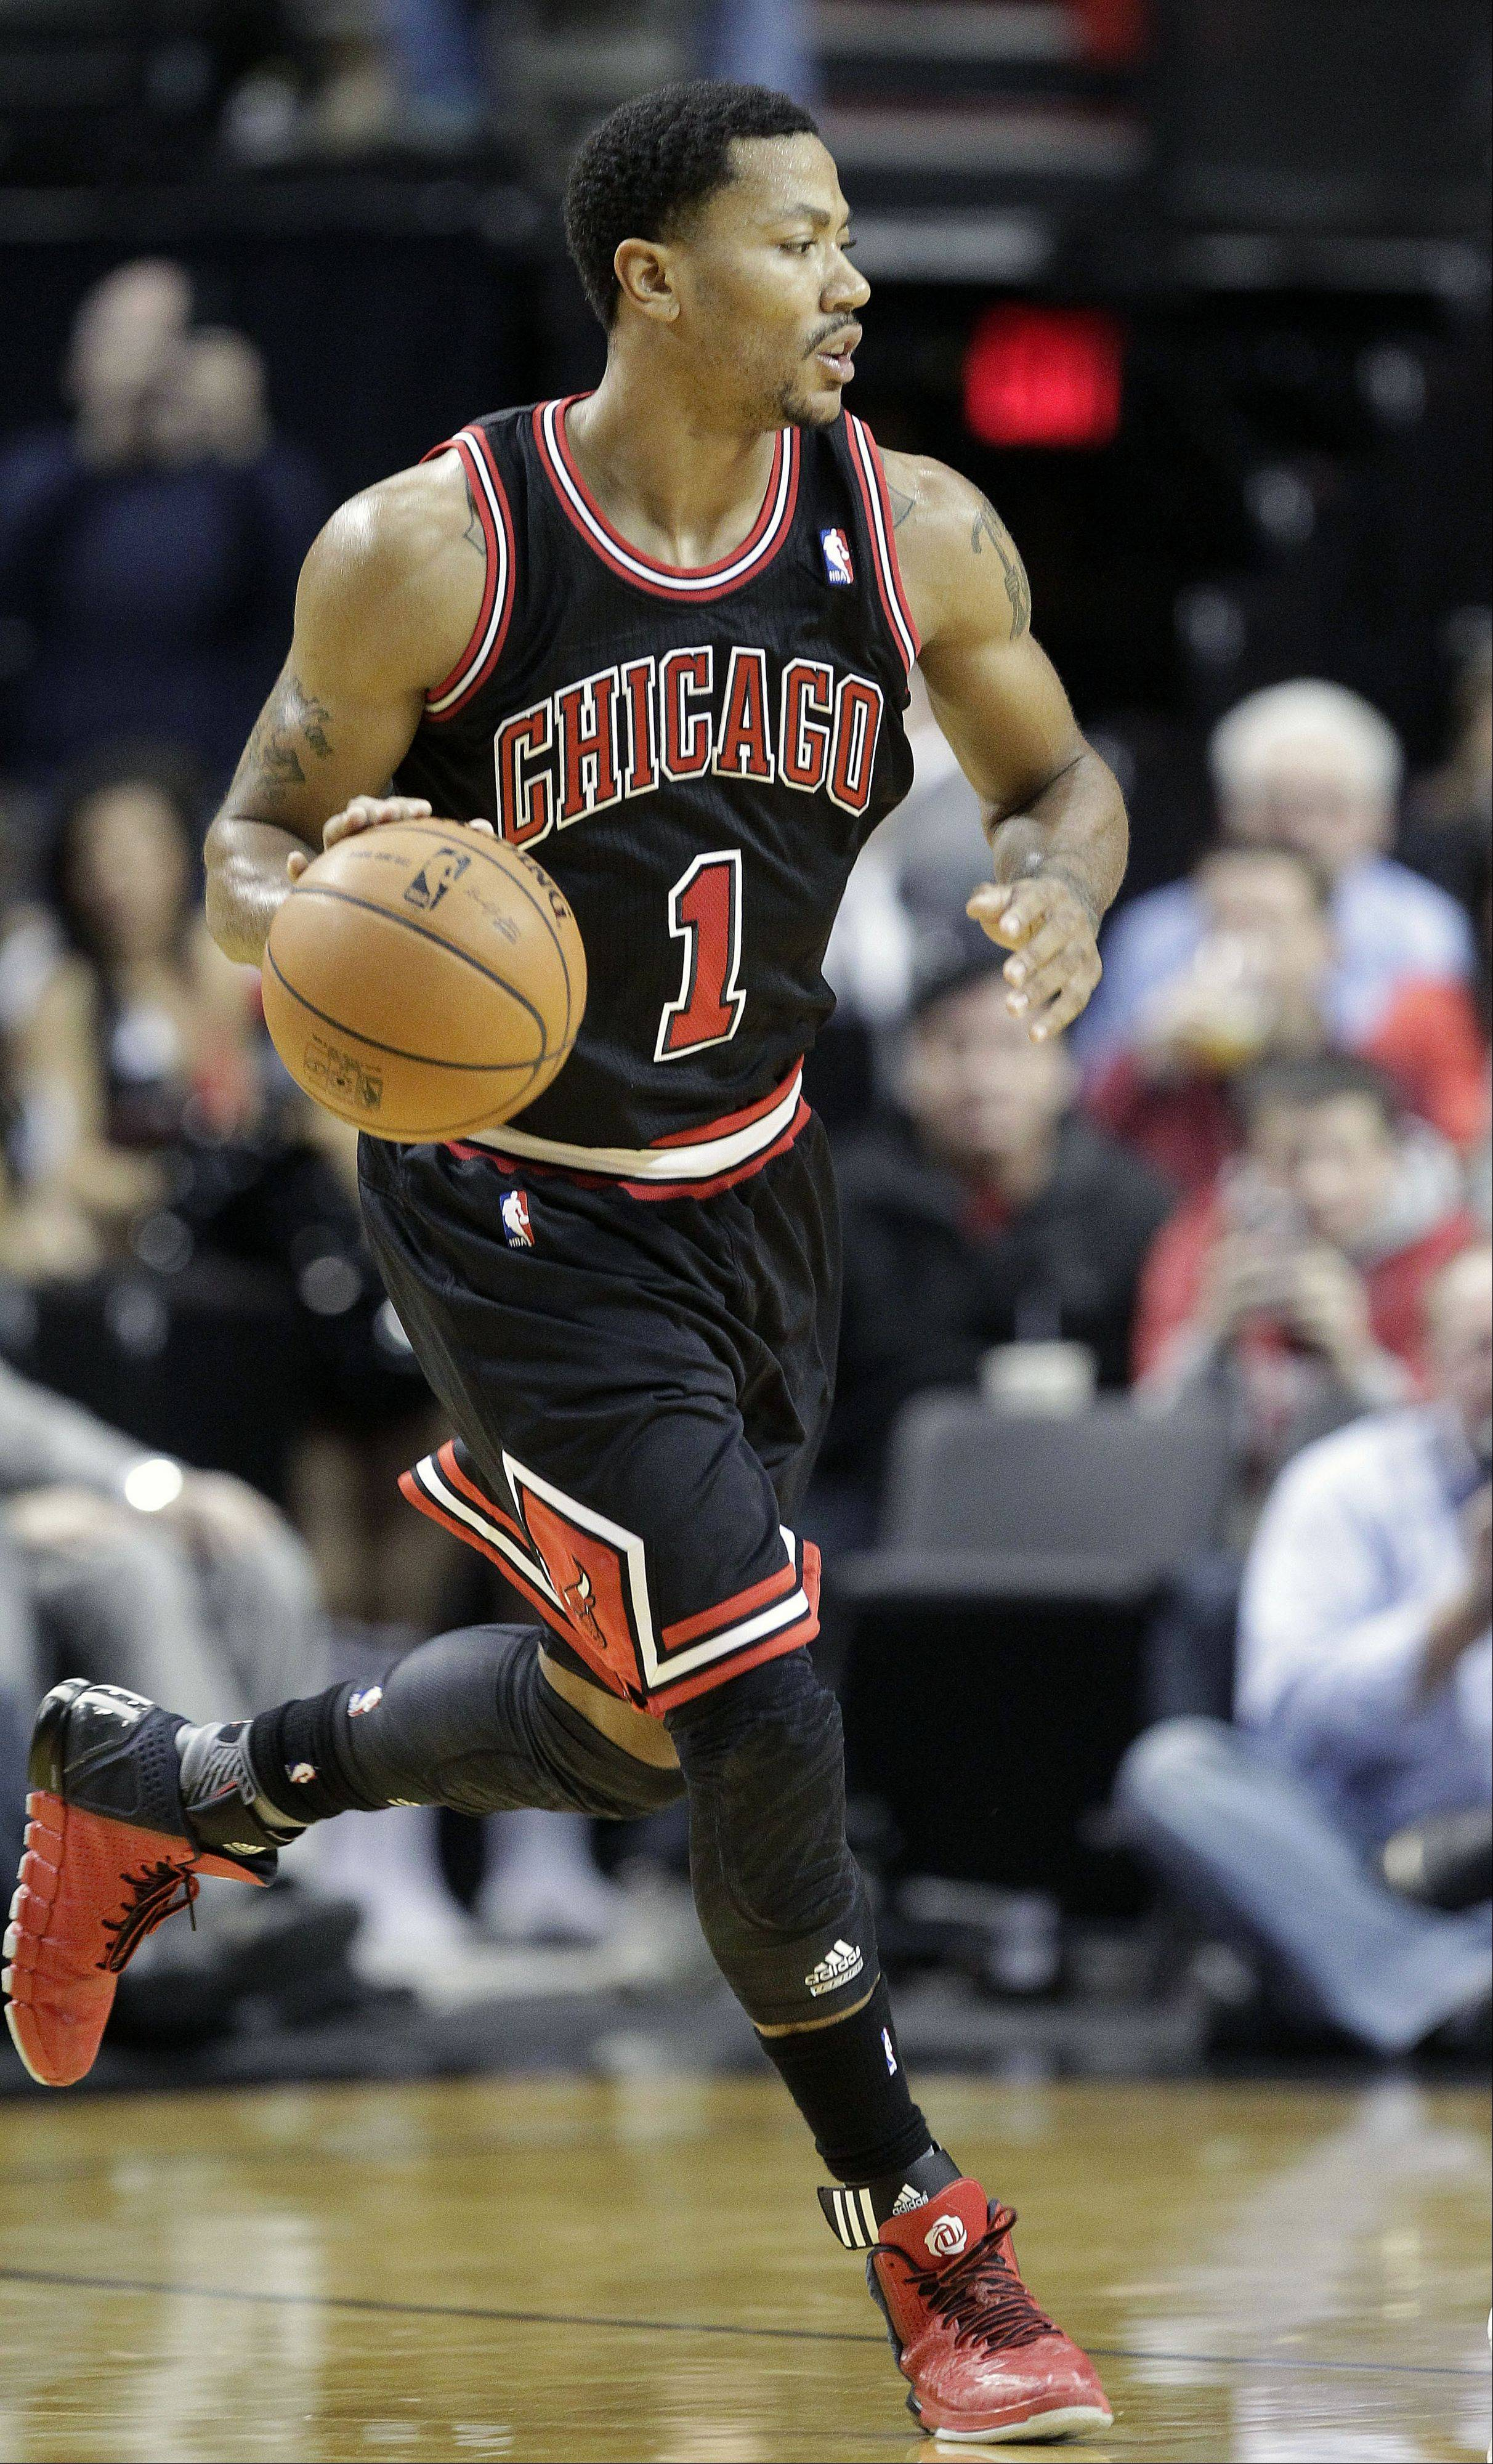 Bulls guard Derrick Rose, shown here during the second half of Friday's game against the Portland Trail Blazers, is out for the season. Rose had surgery to repair a torn medial meniscus in his right knee.